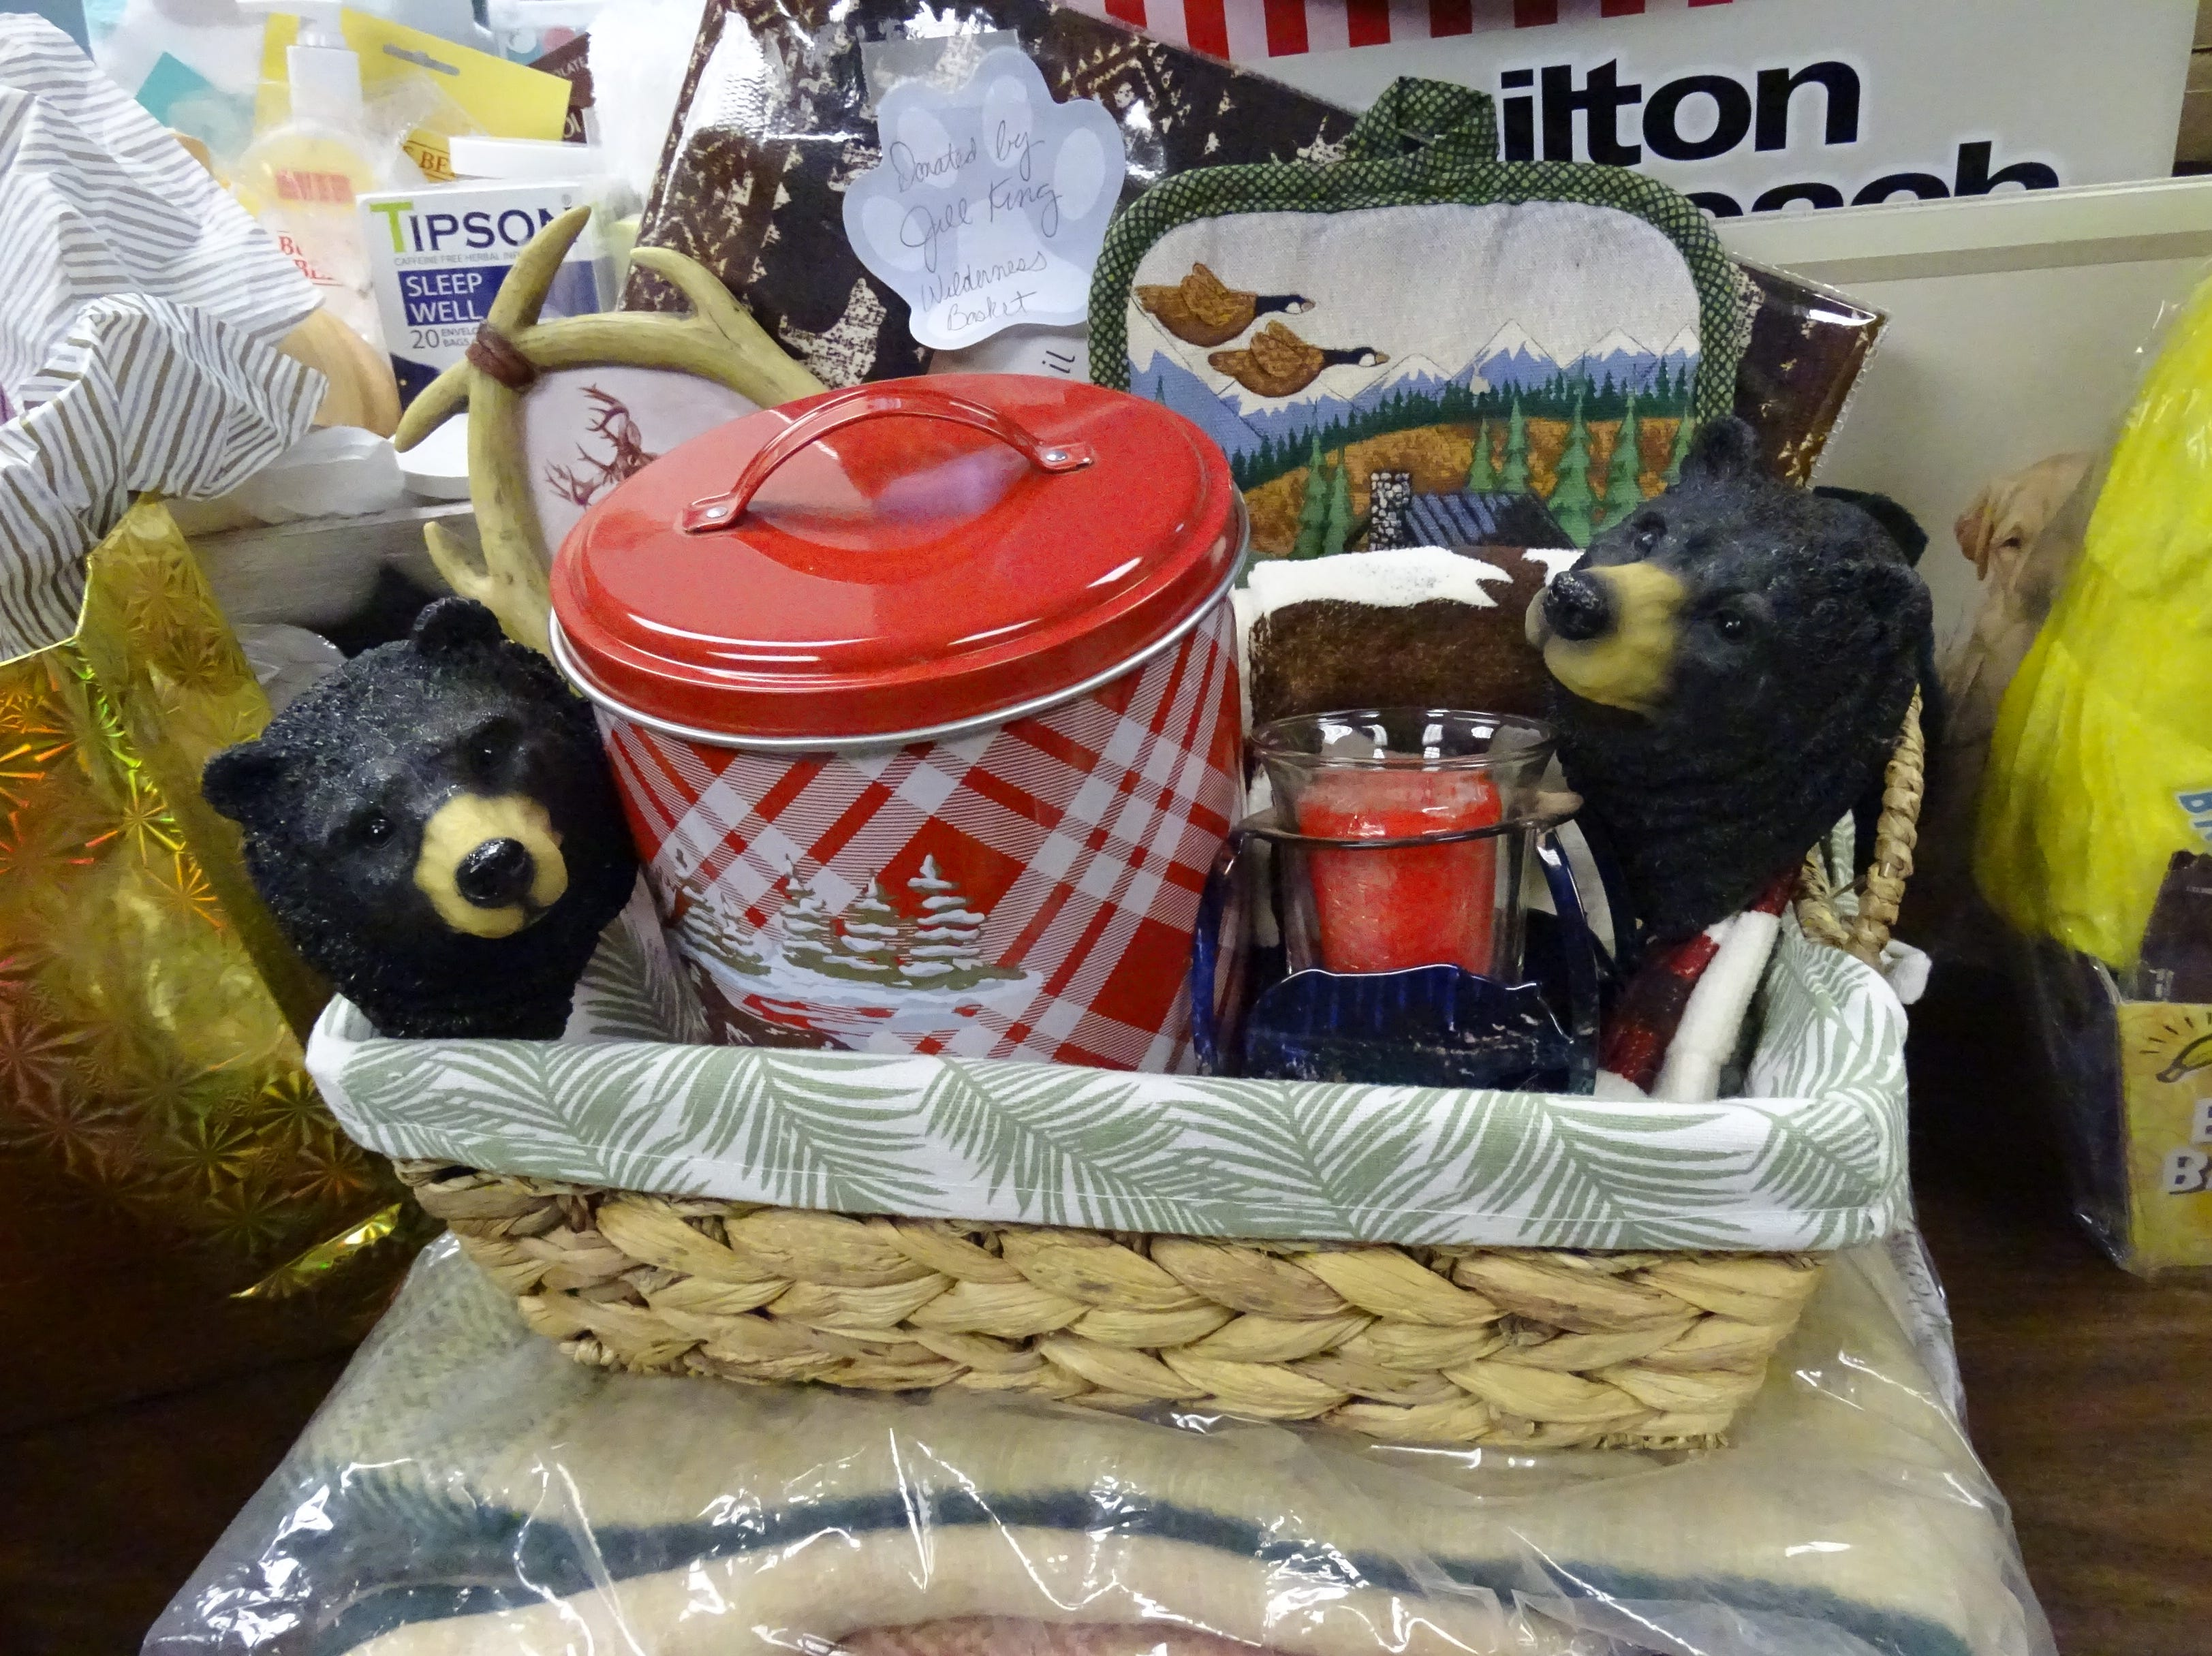 The Humane Society Serving Crawford County will have its 11th annual Puttin' on the Dog fundraiser this Friday, May 3. Doors open at 5:30 p.m. Gift baskets, gift certificates and other prizes will be raffled or auctioned off during the event. All proceeds benefit the local humane society.